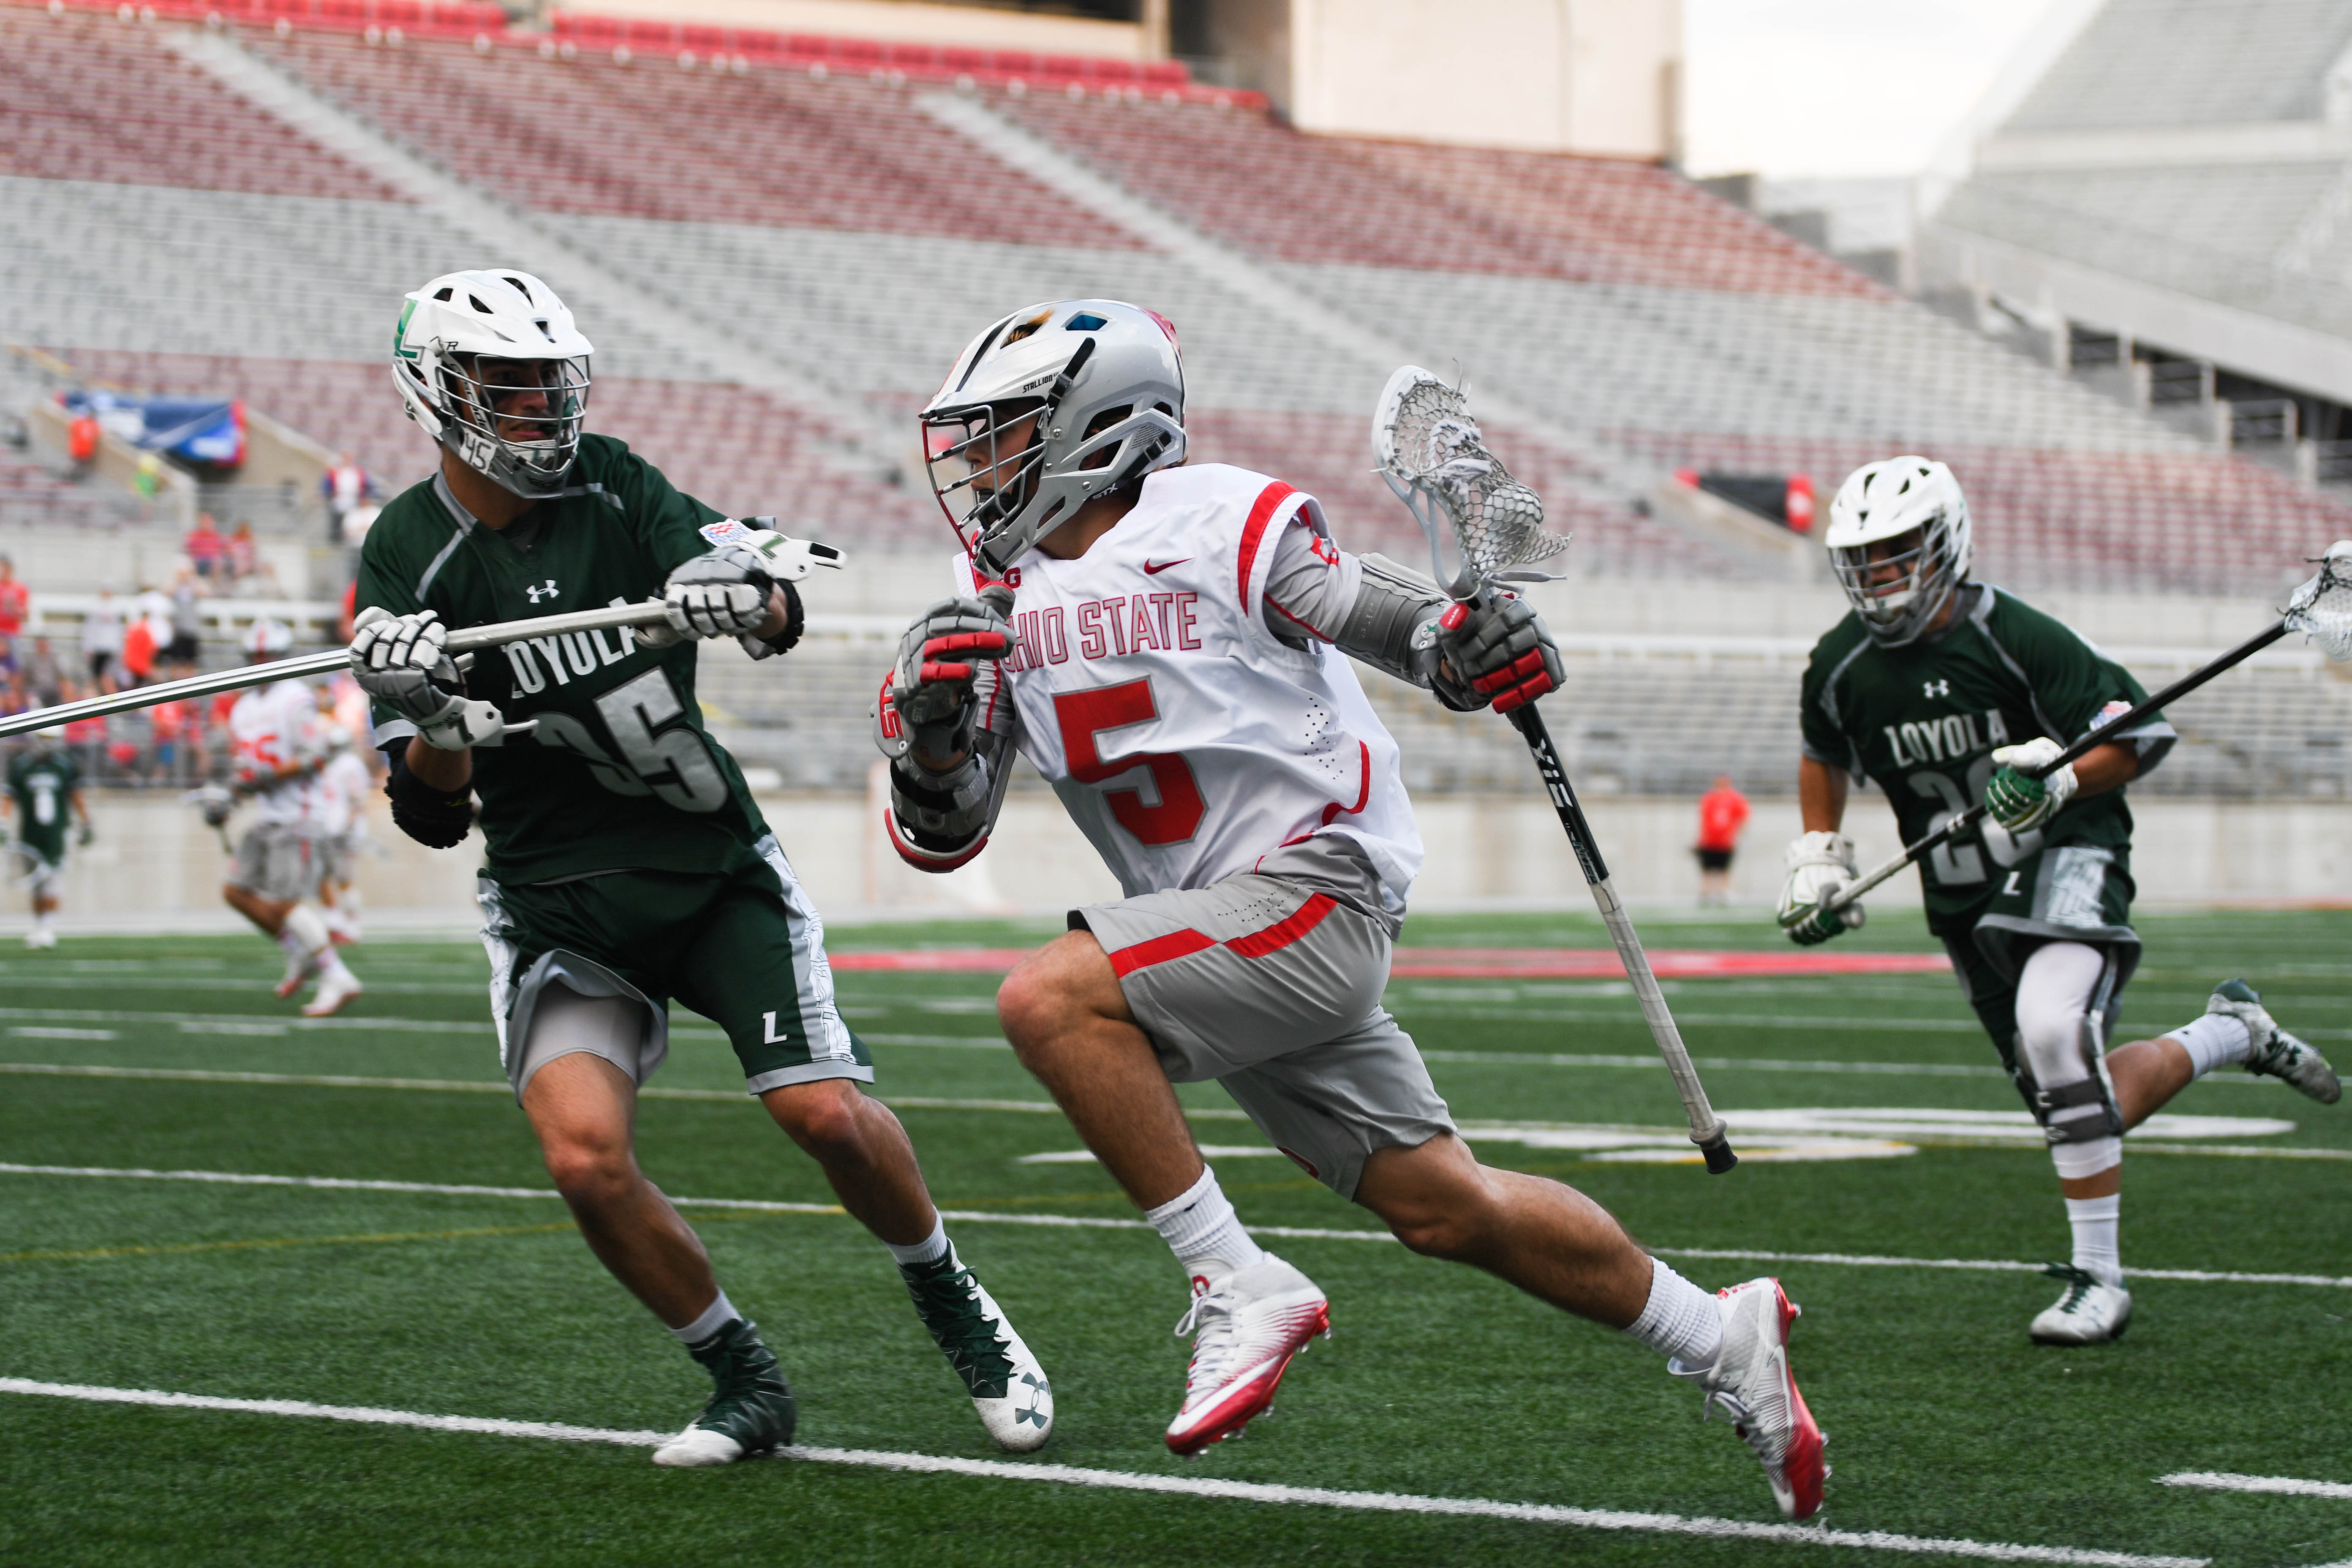 Men's Lacrosse: No. 6 Ohio State welcomes Hofstra for ...